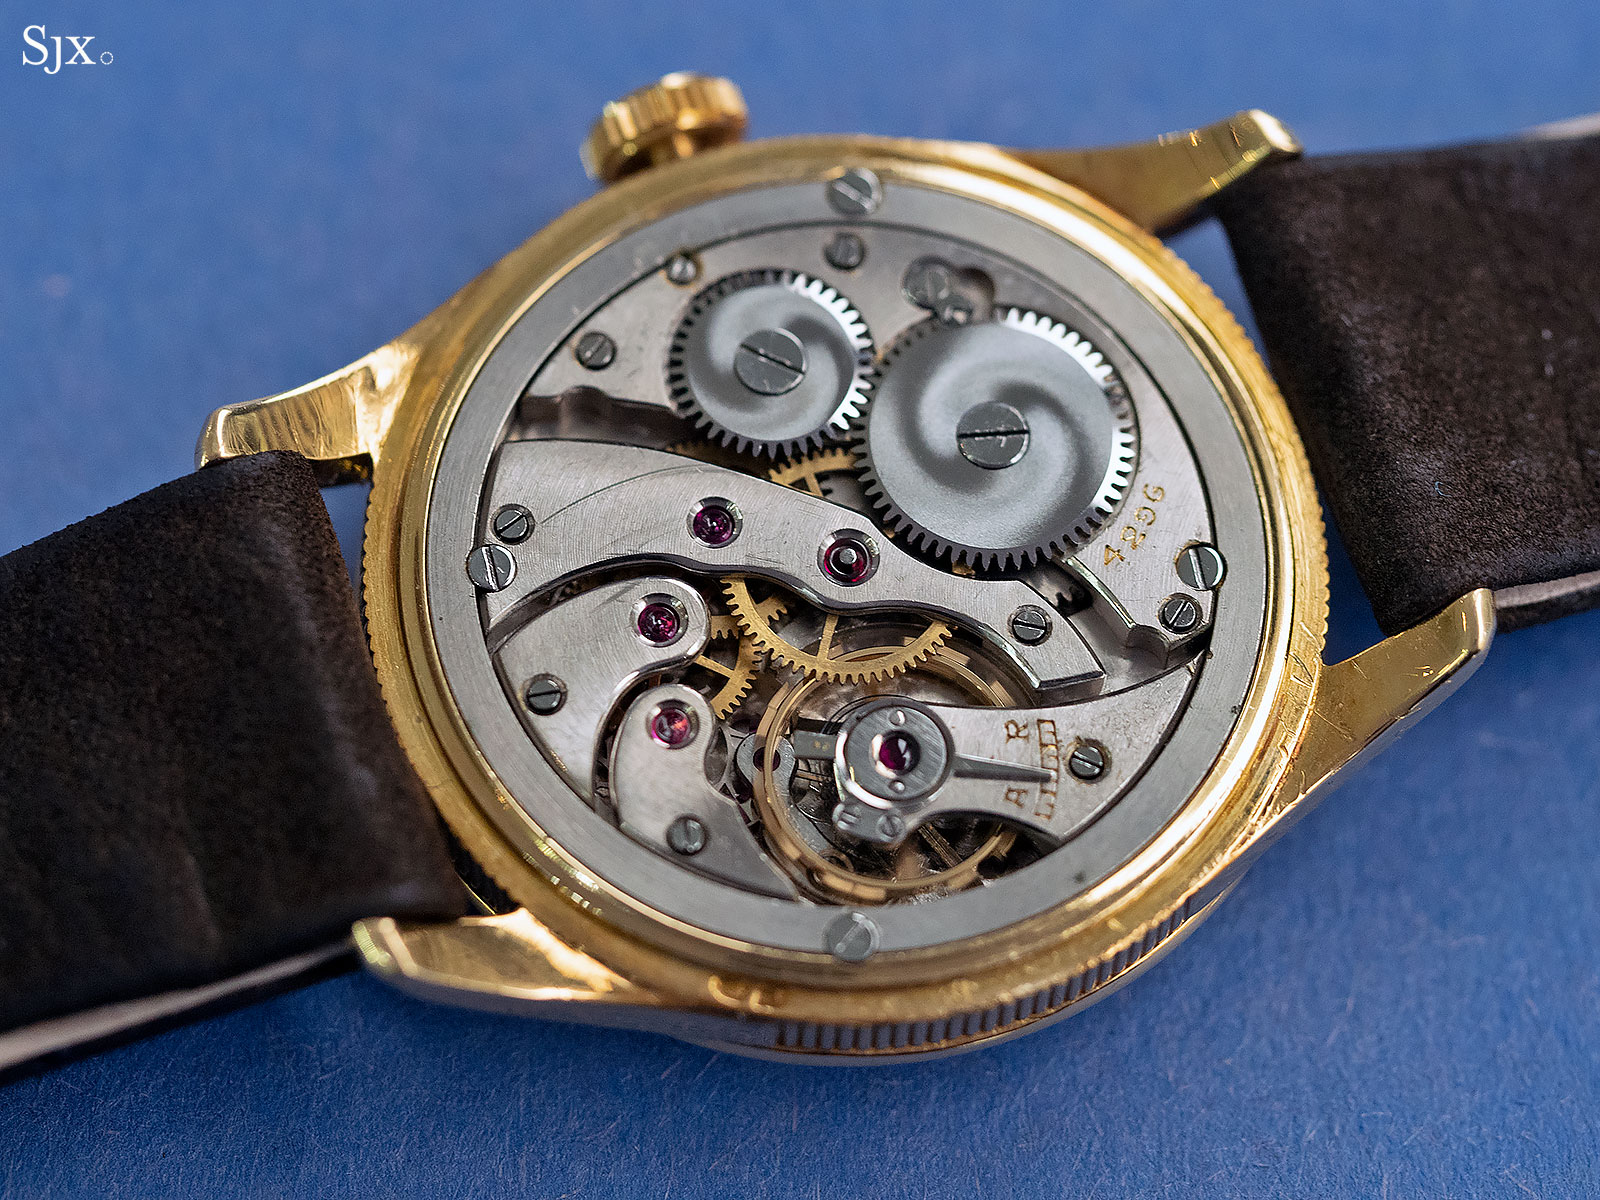 Breguet time-only chronometer 4296-1